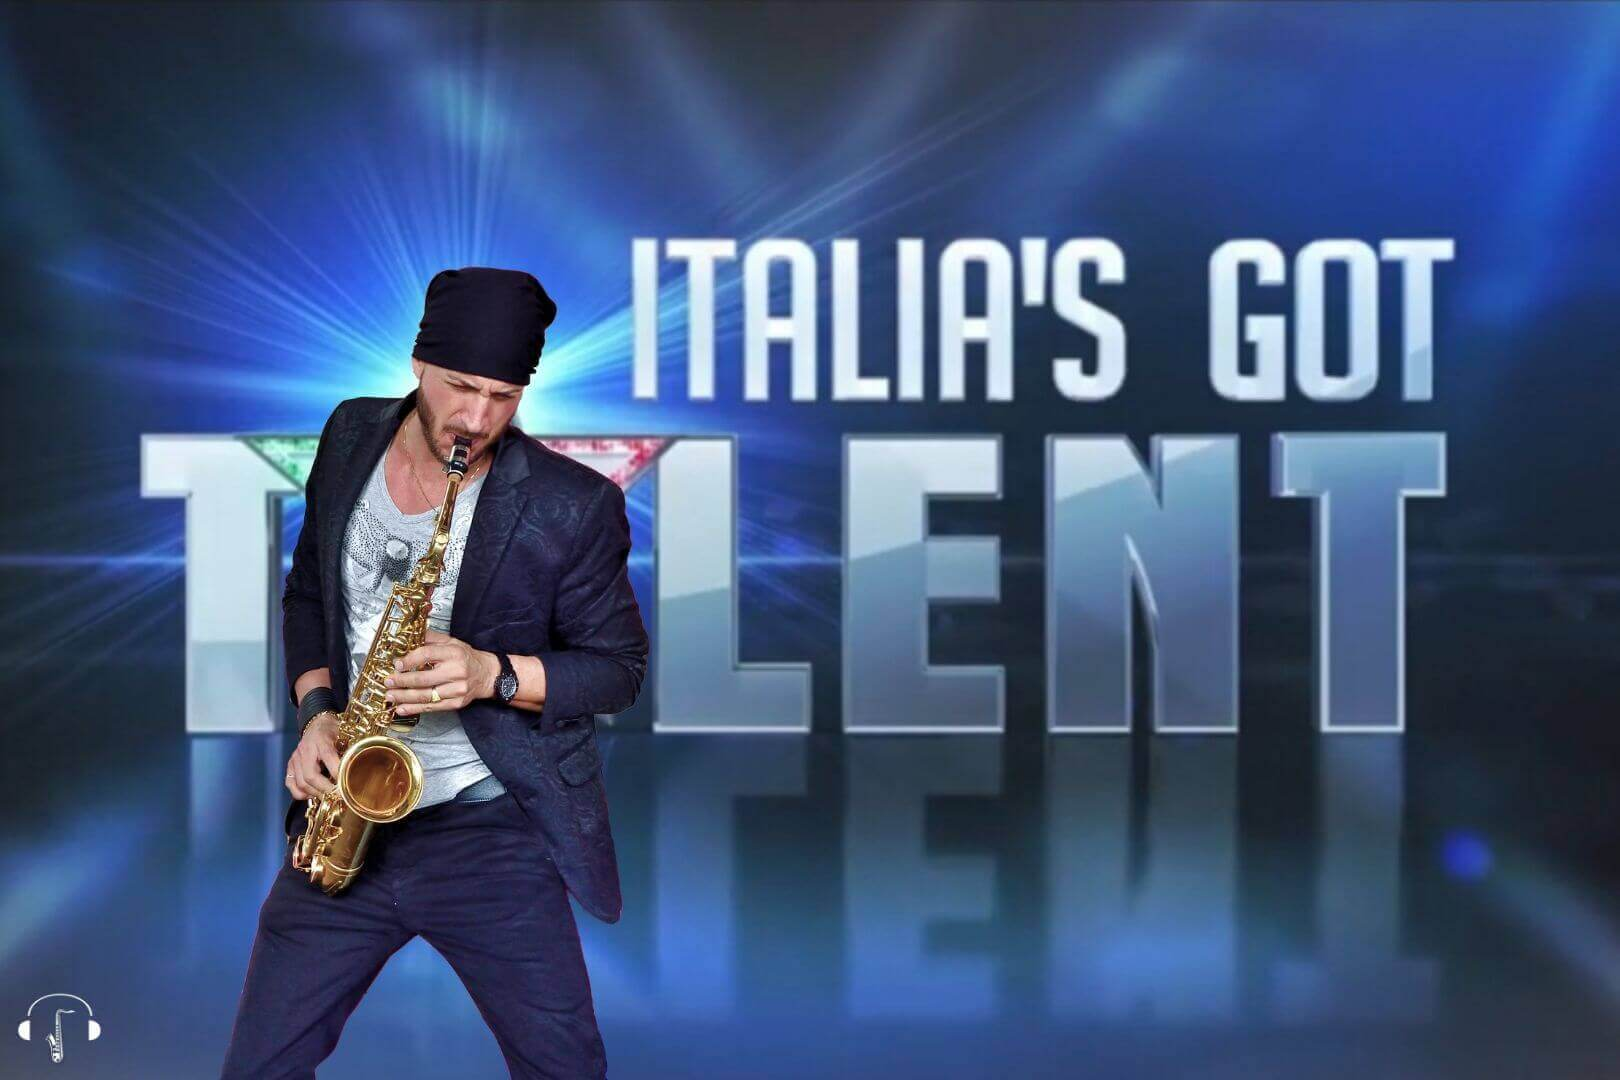 thomas-de-gobbi-italias-got-talent